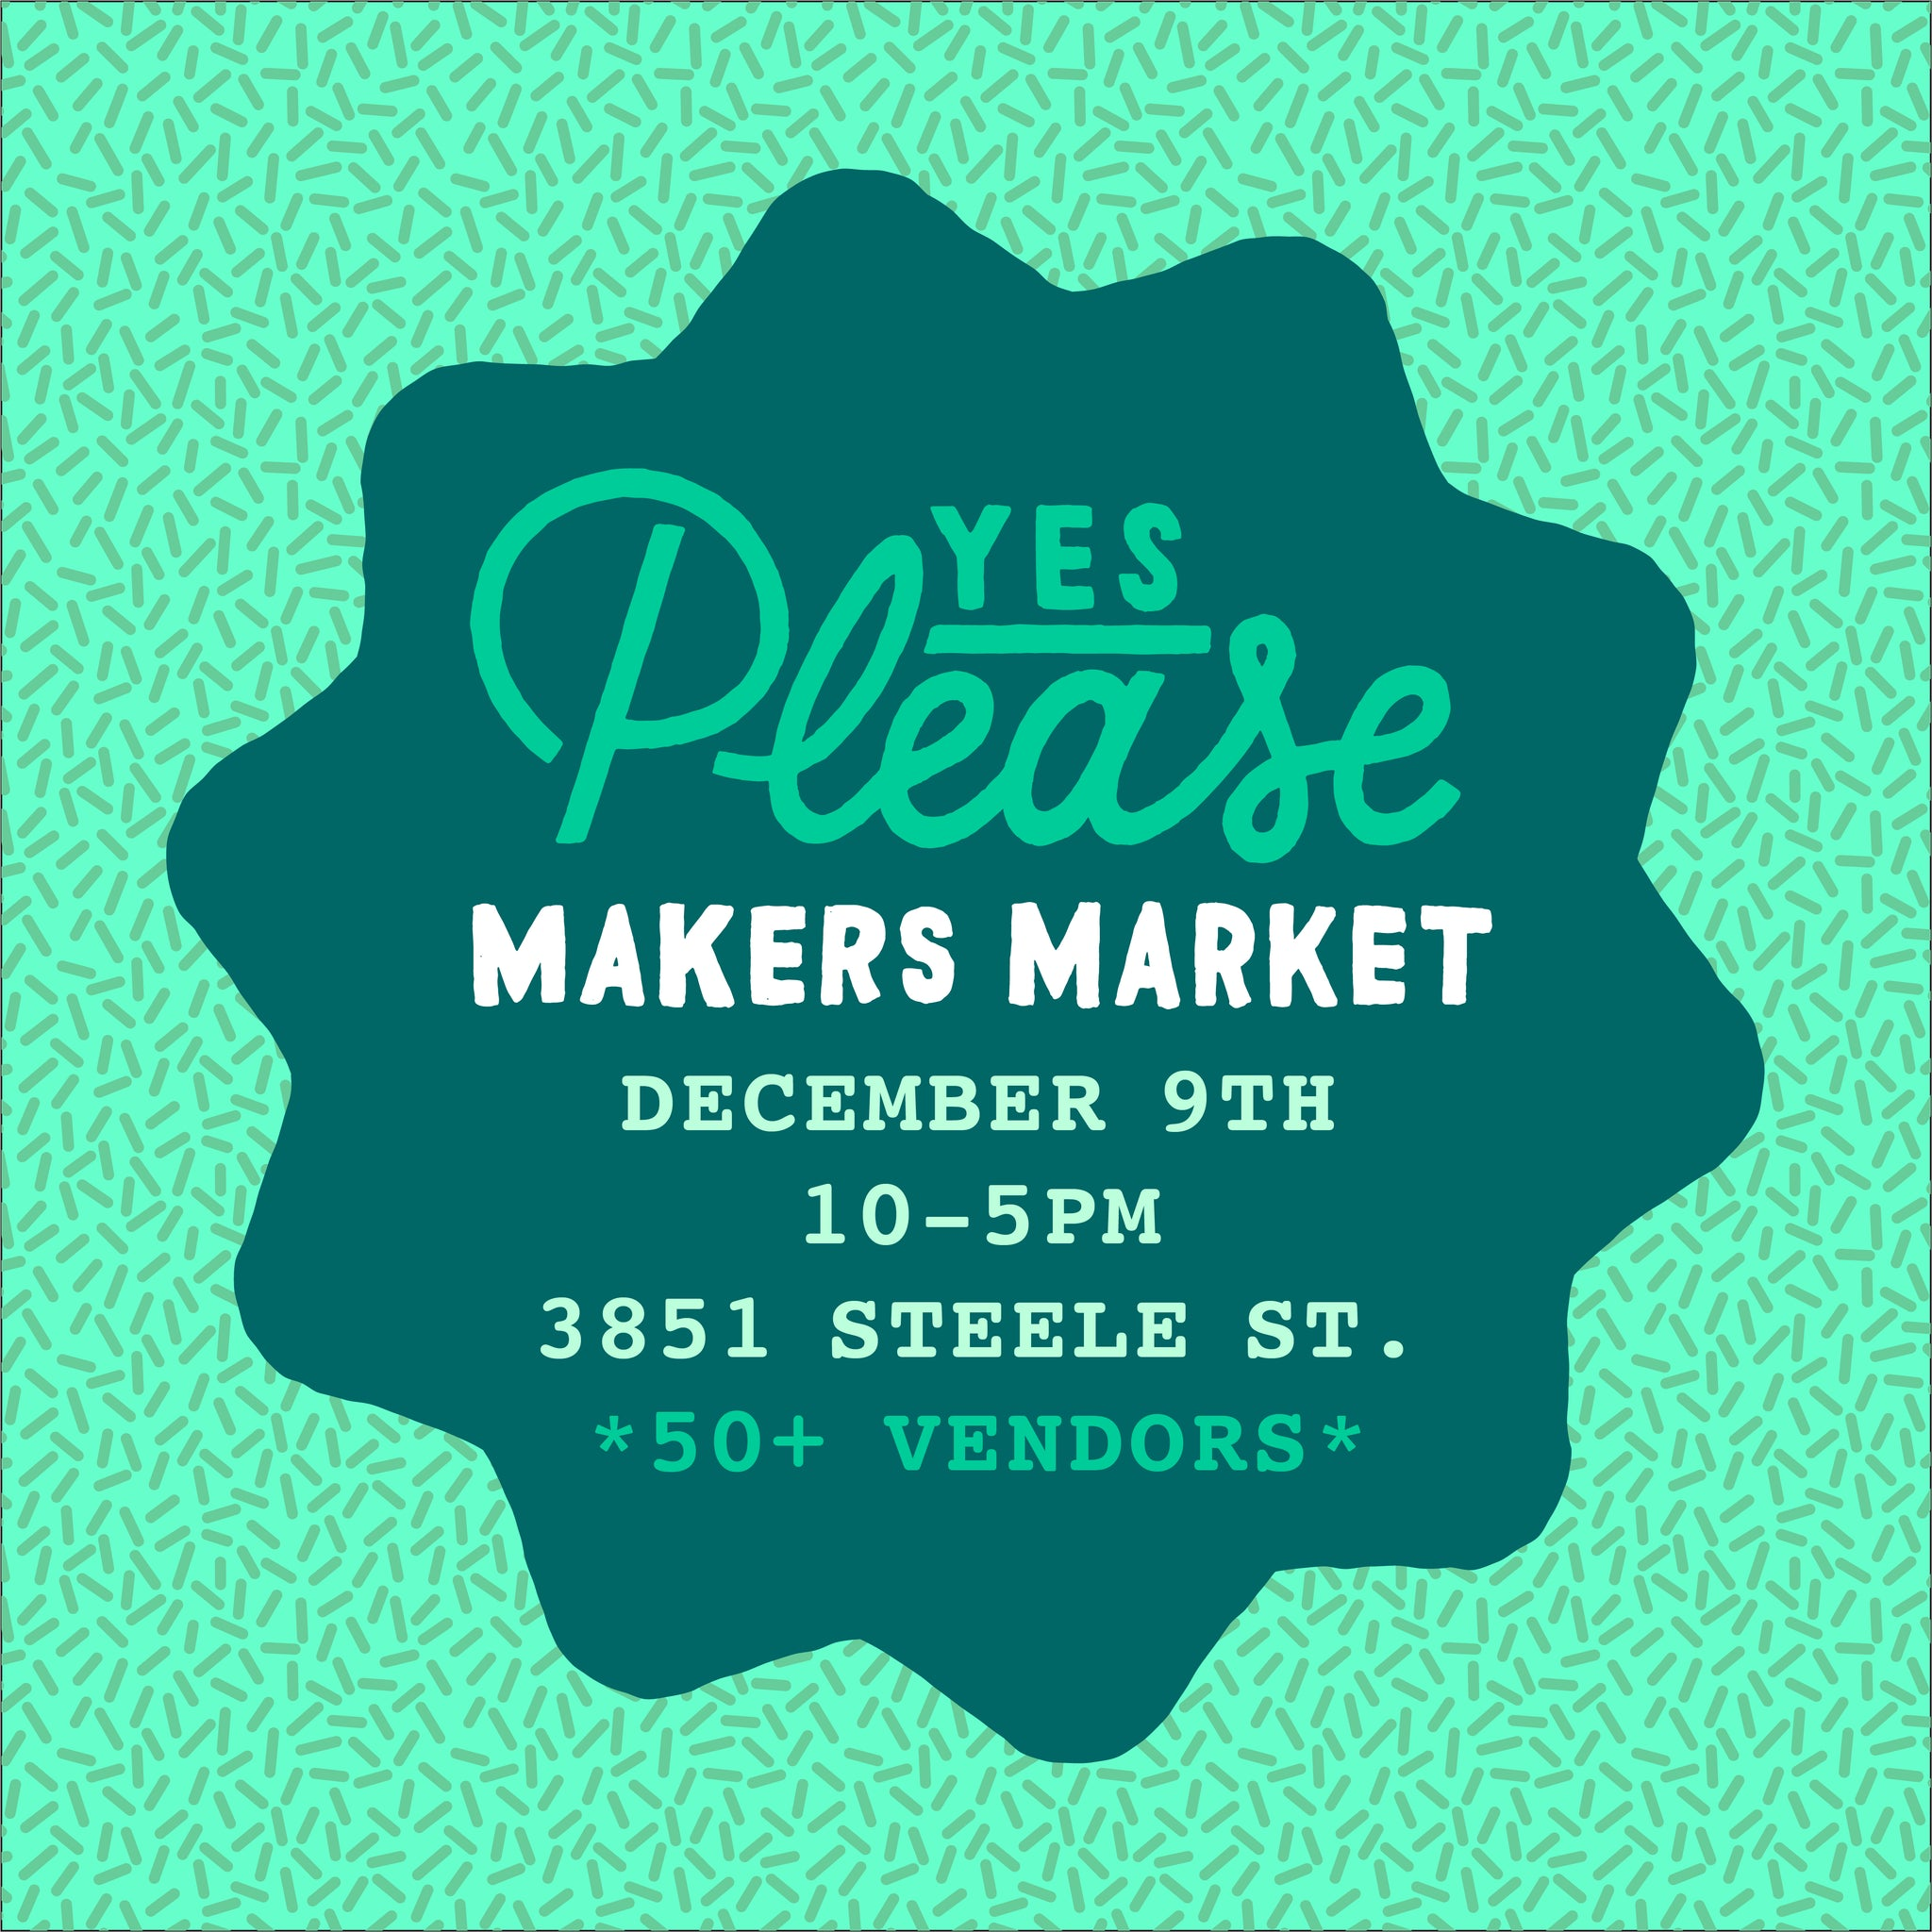 Yes Please Makers Market